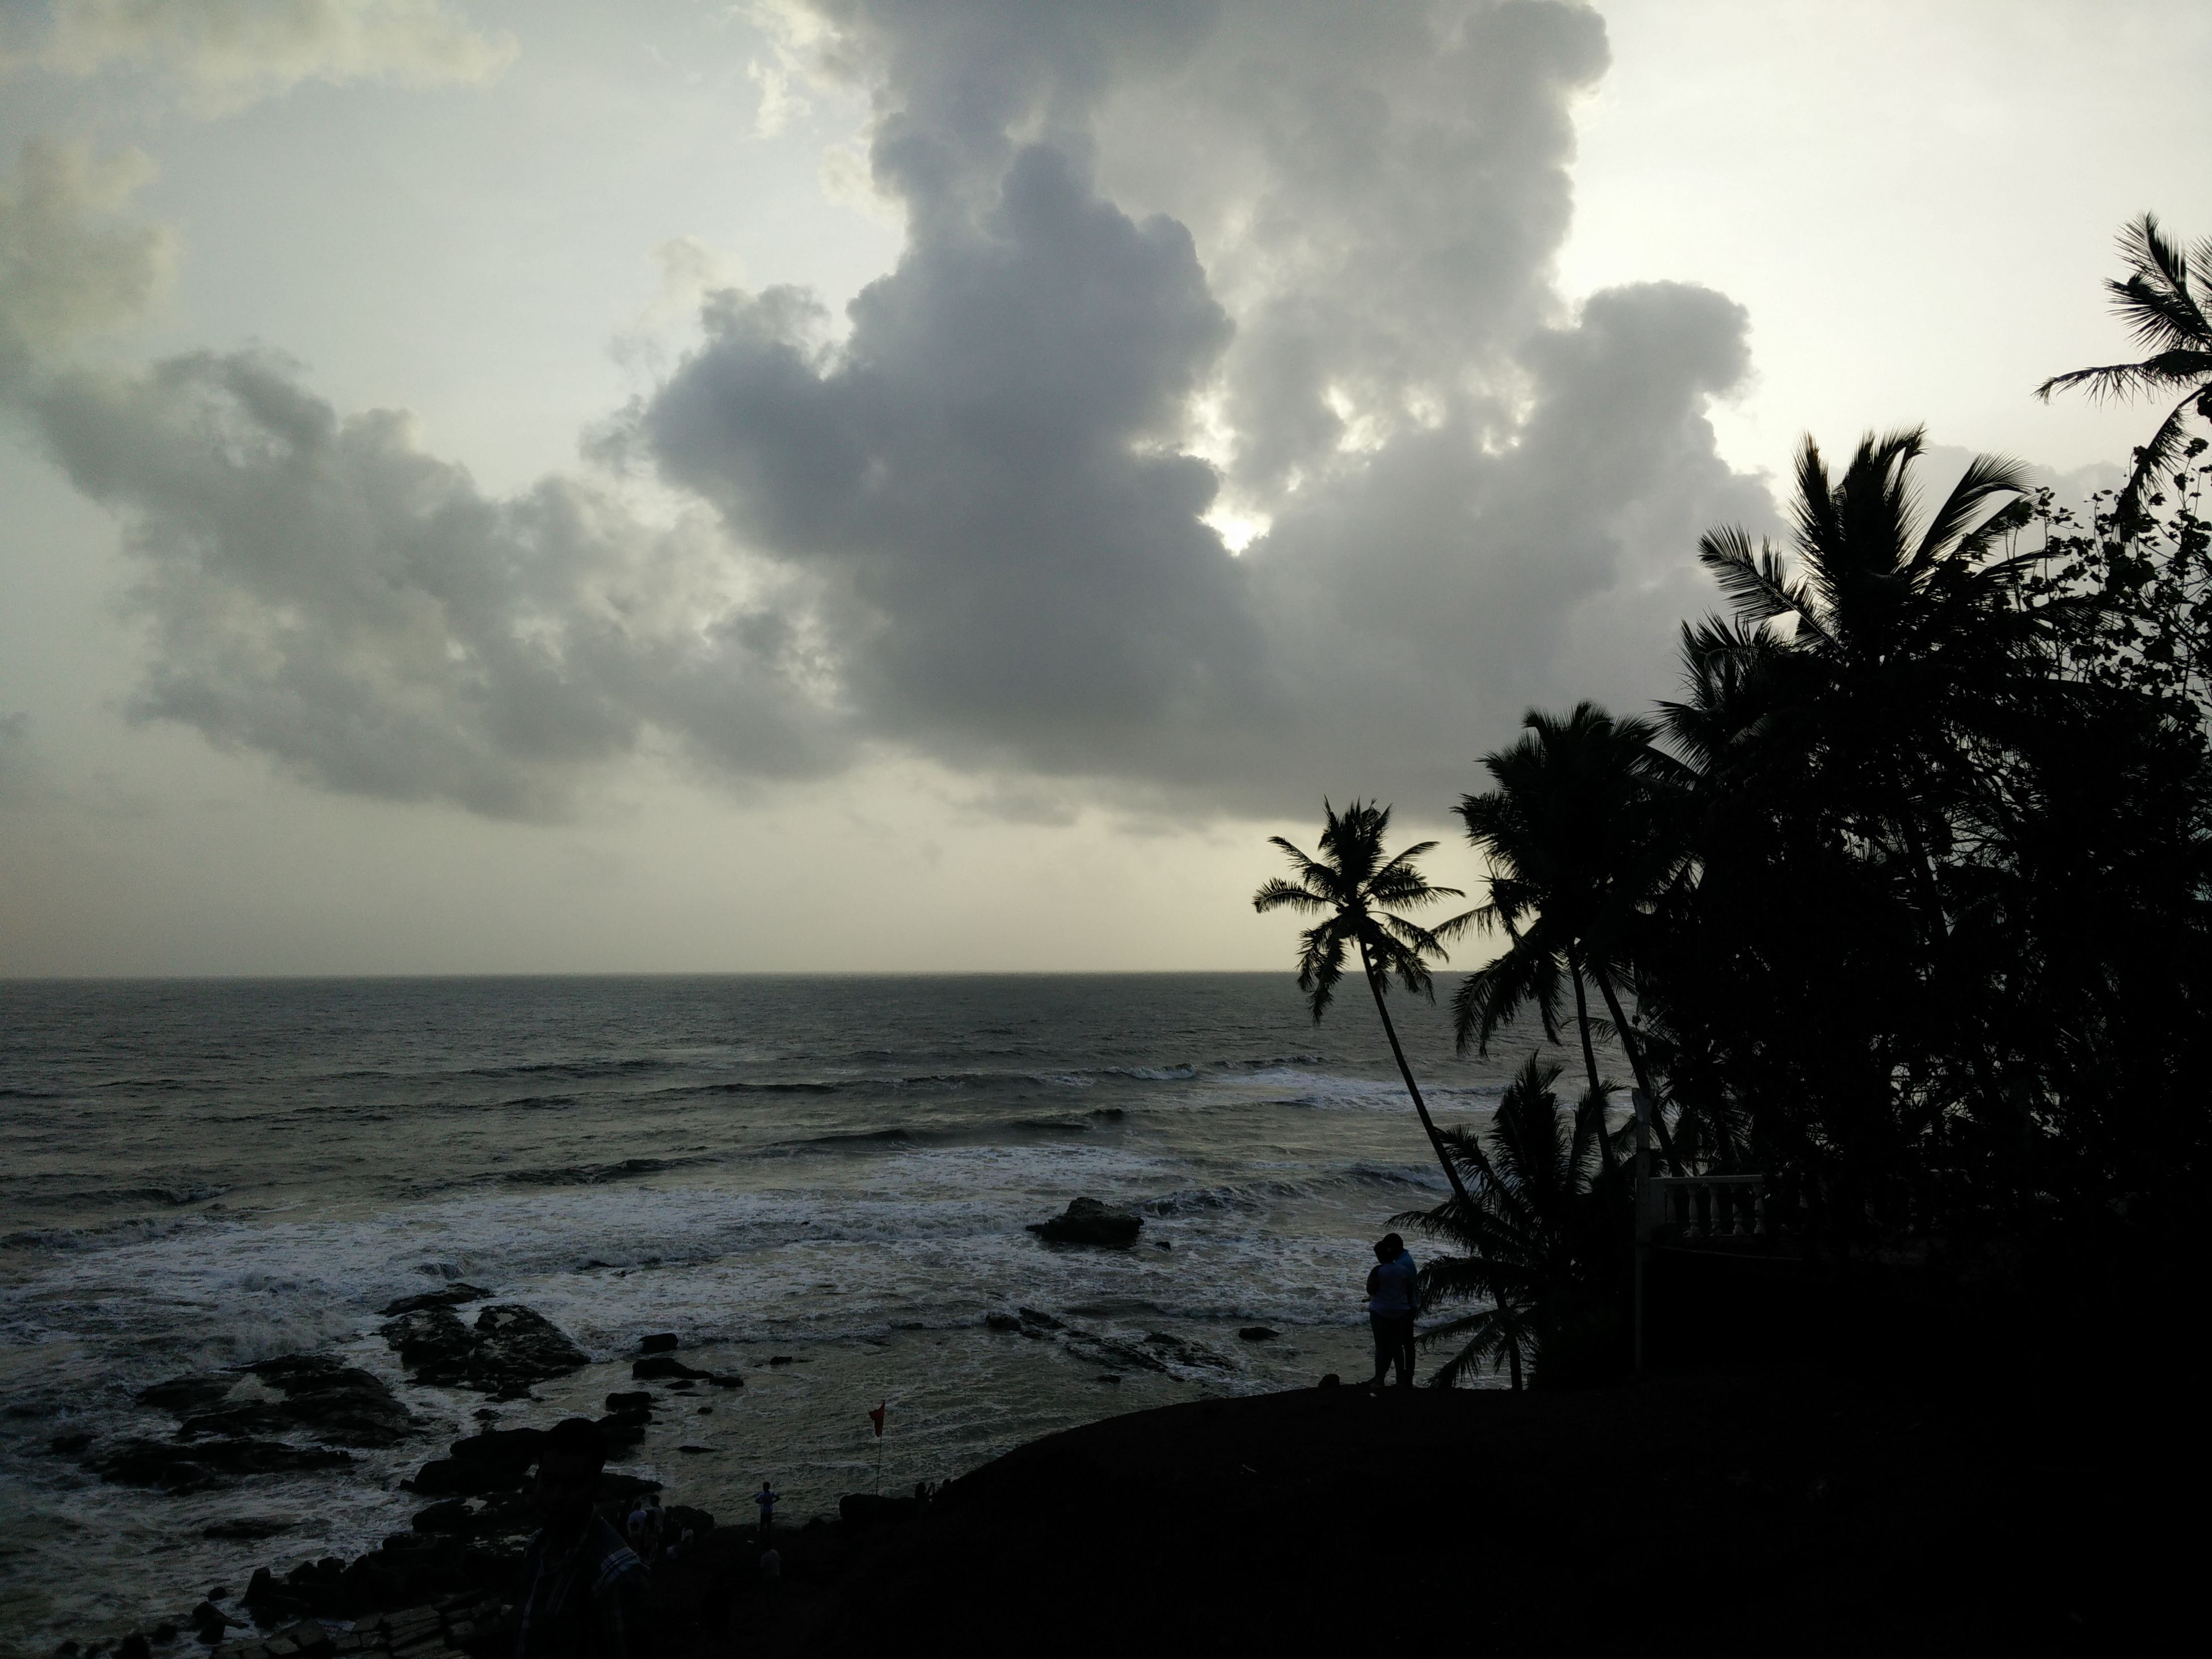 sea, horizon over water, sky, water, tranquil scene, tranquility, scenics, beauty in nature, cloud - sky, tree, nature, beach, cloud, idyllic, silhouette, shore, cloudy, outdoors, remote, coastline